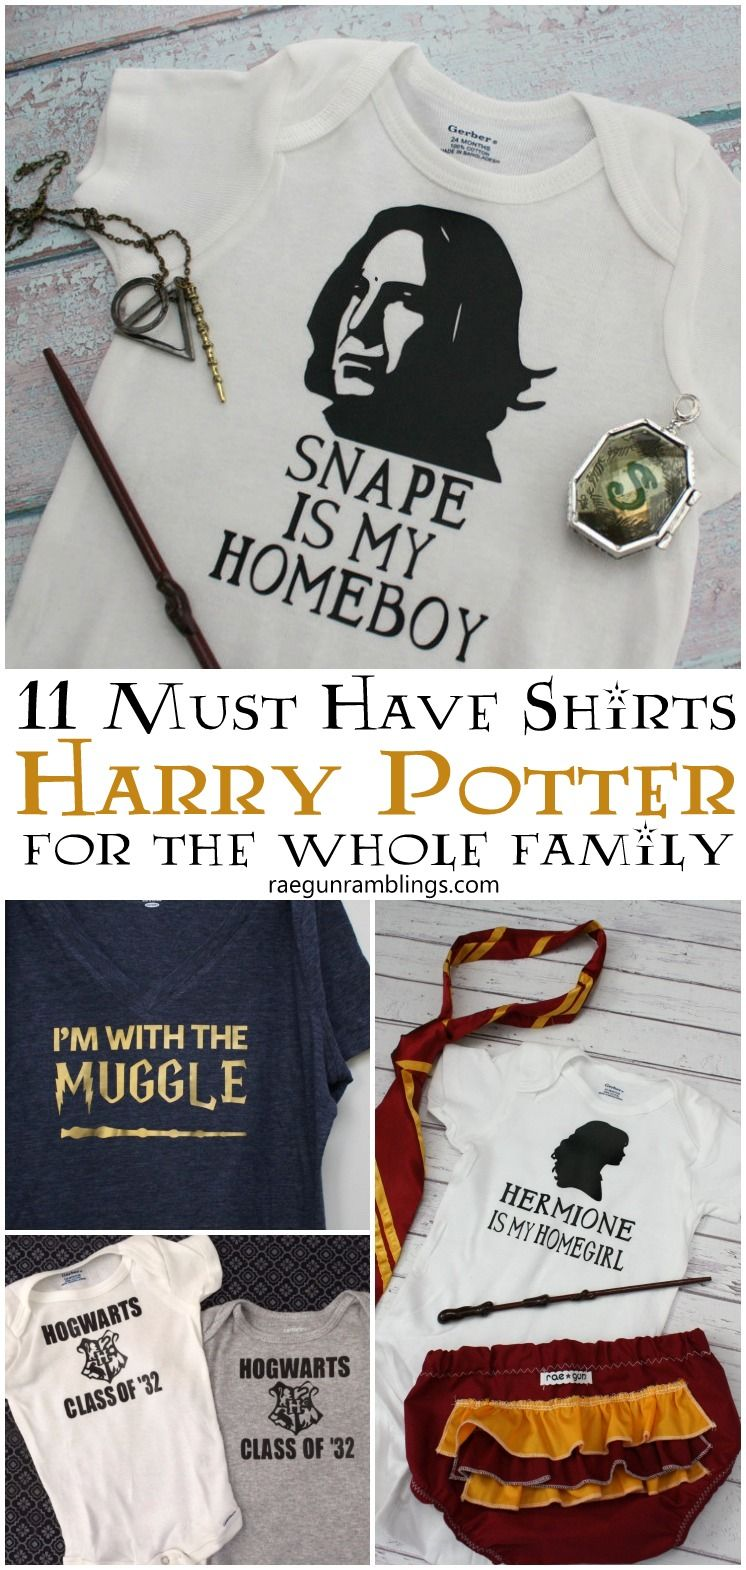 11 Must Have Harry Potter Shirts Baby Shirts Harry